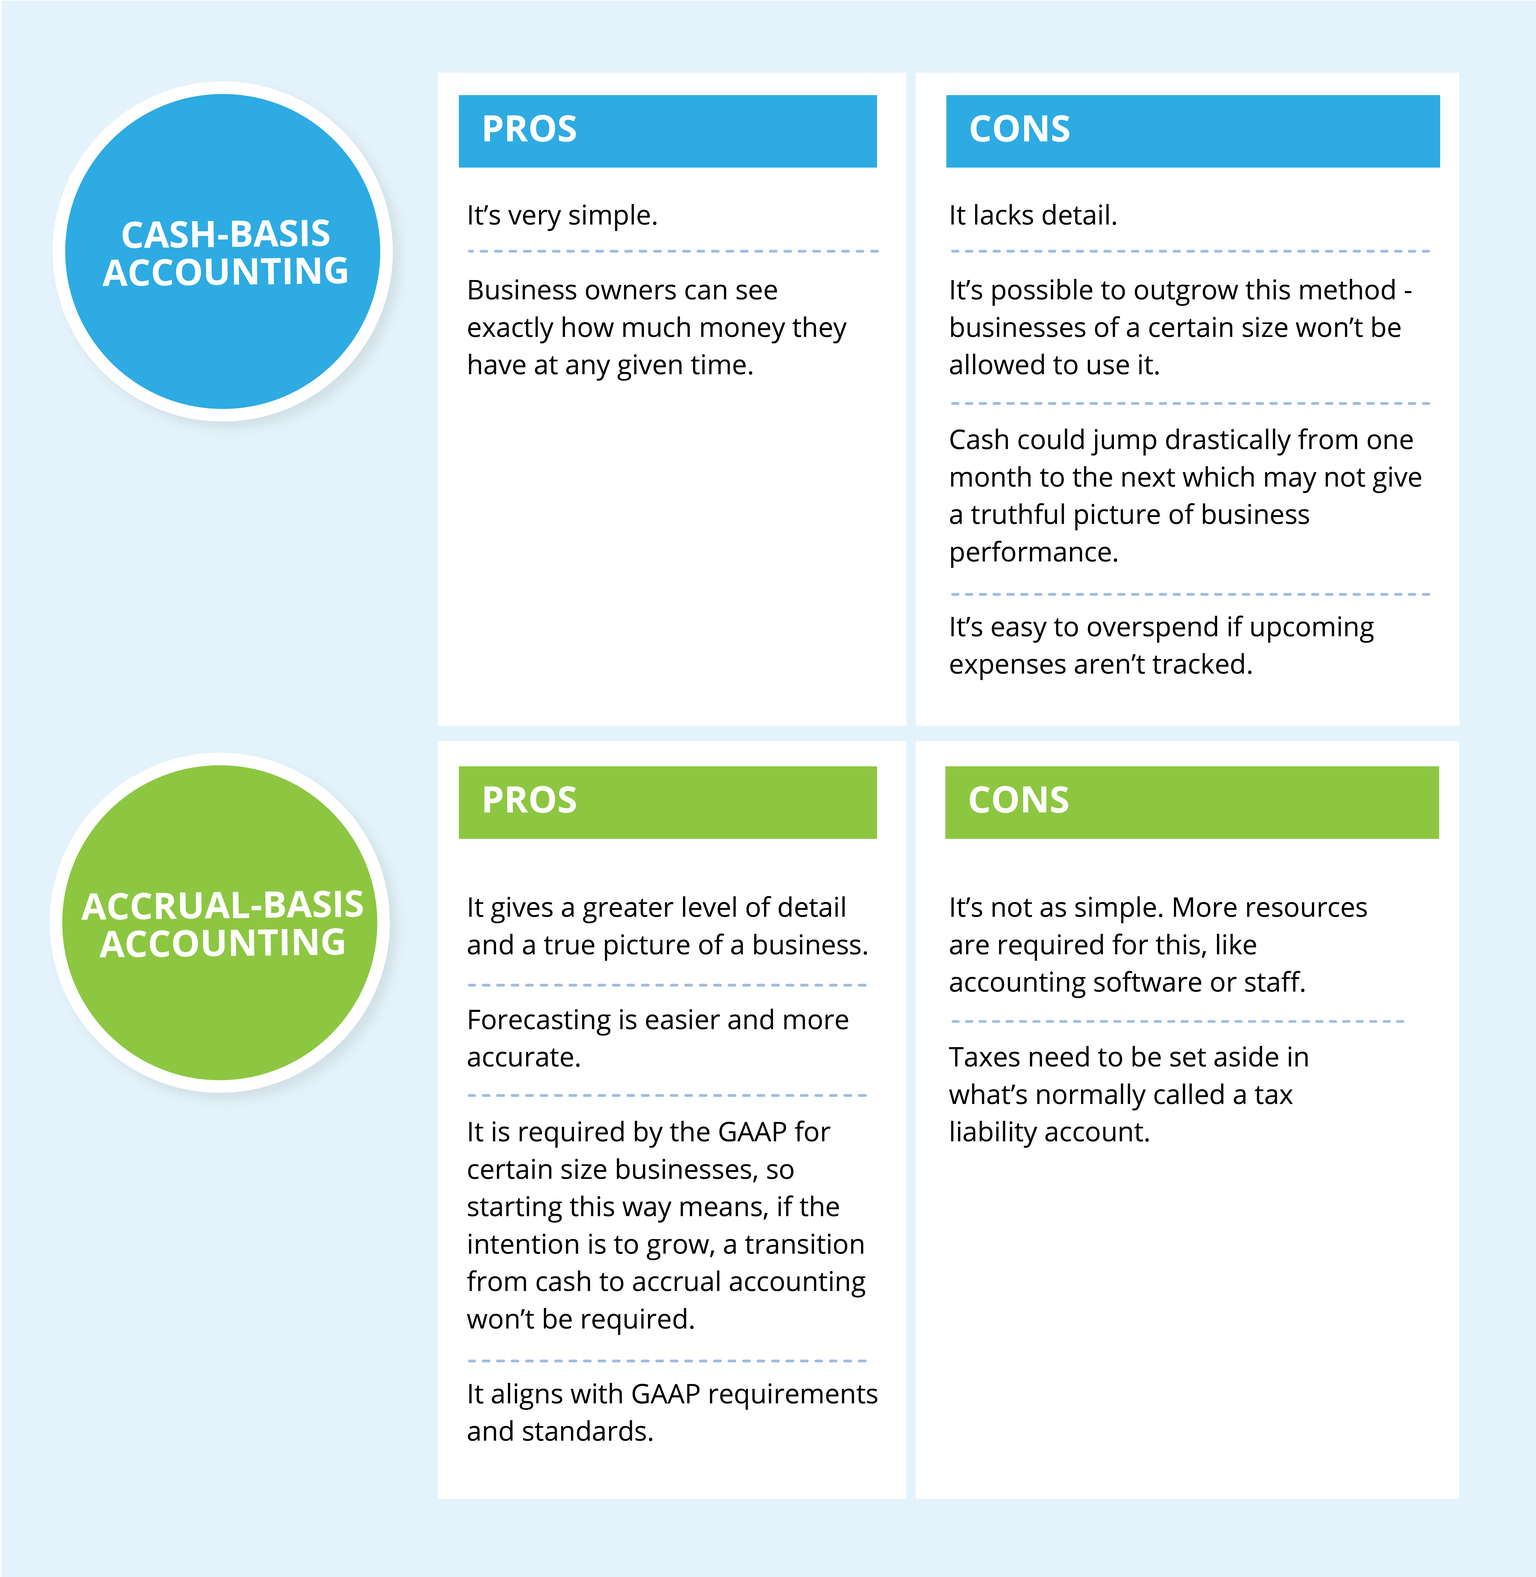 Accrual vs cash pros and cons